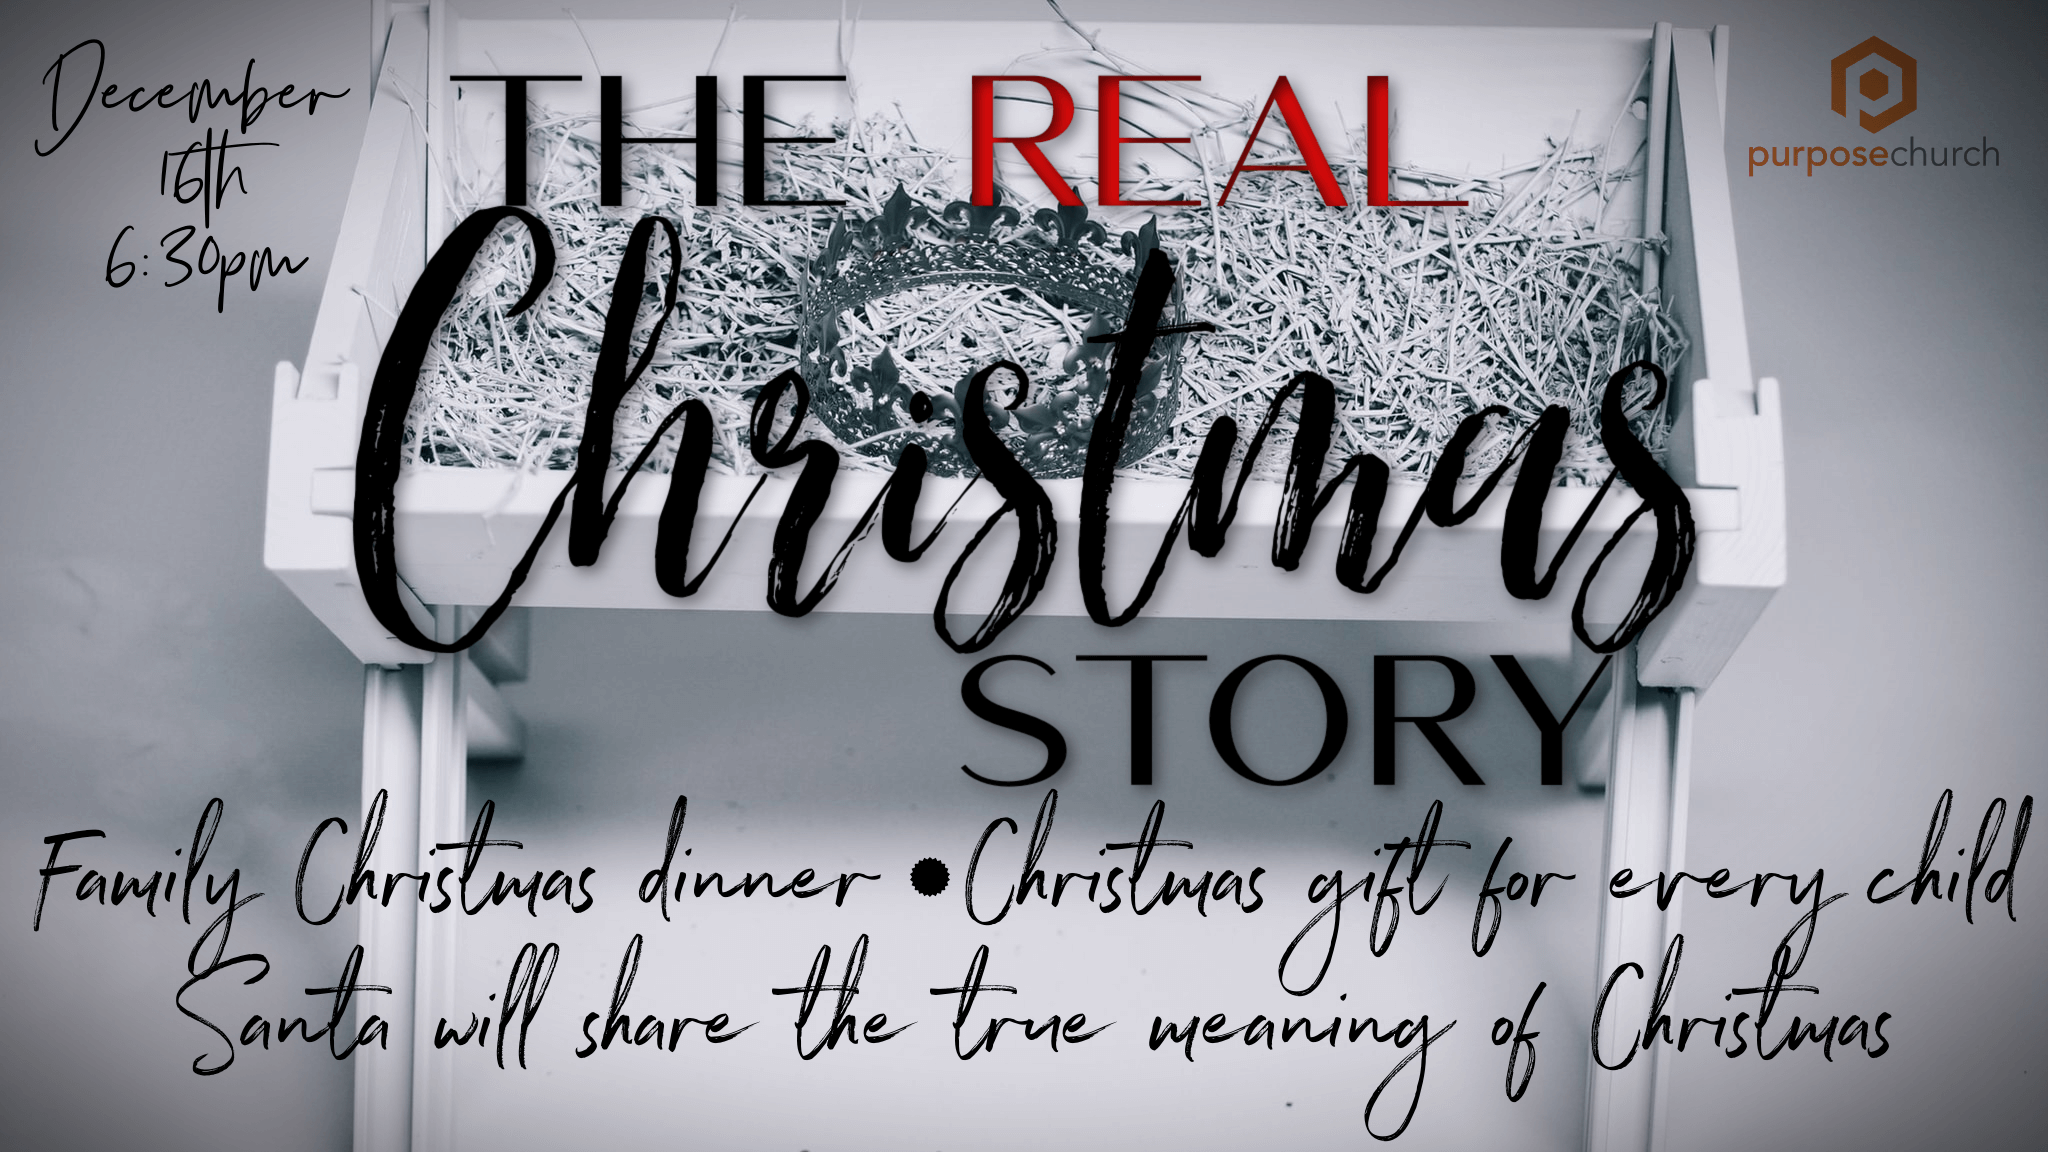 The Real Christmas Story Flyer